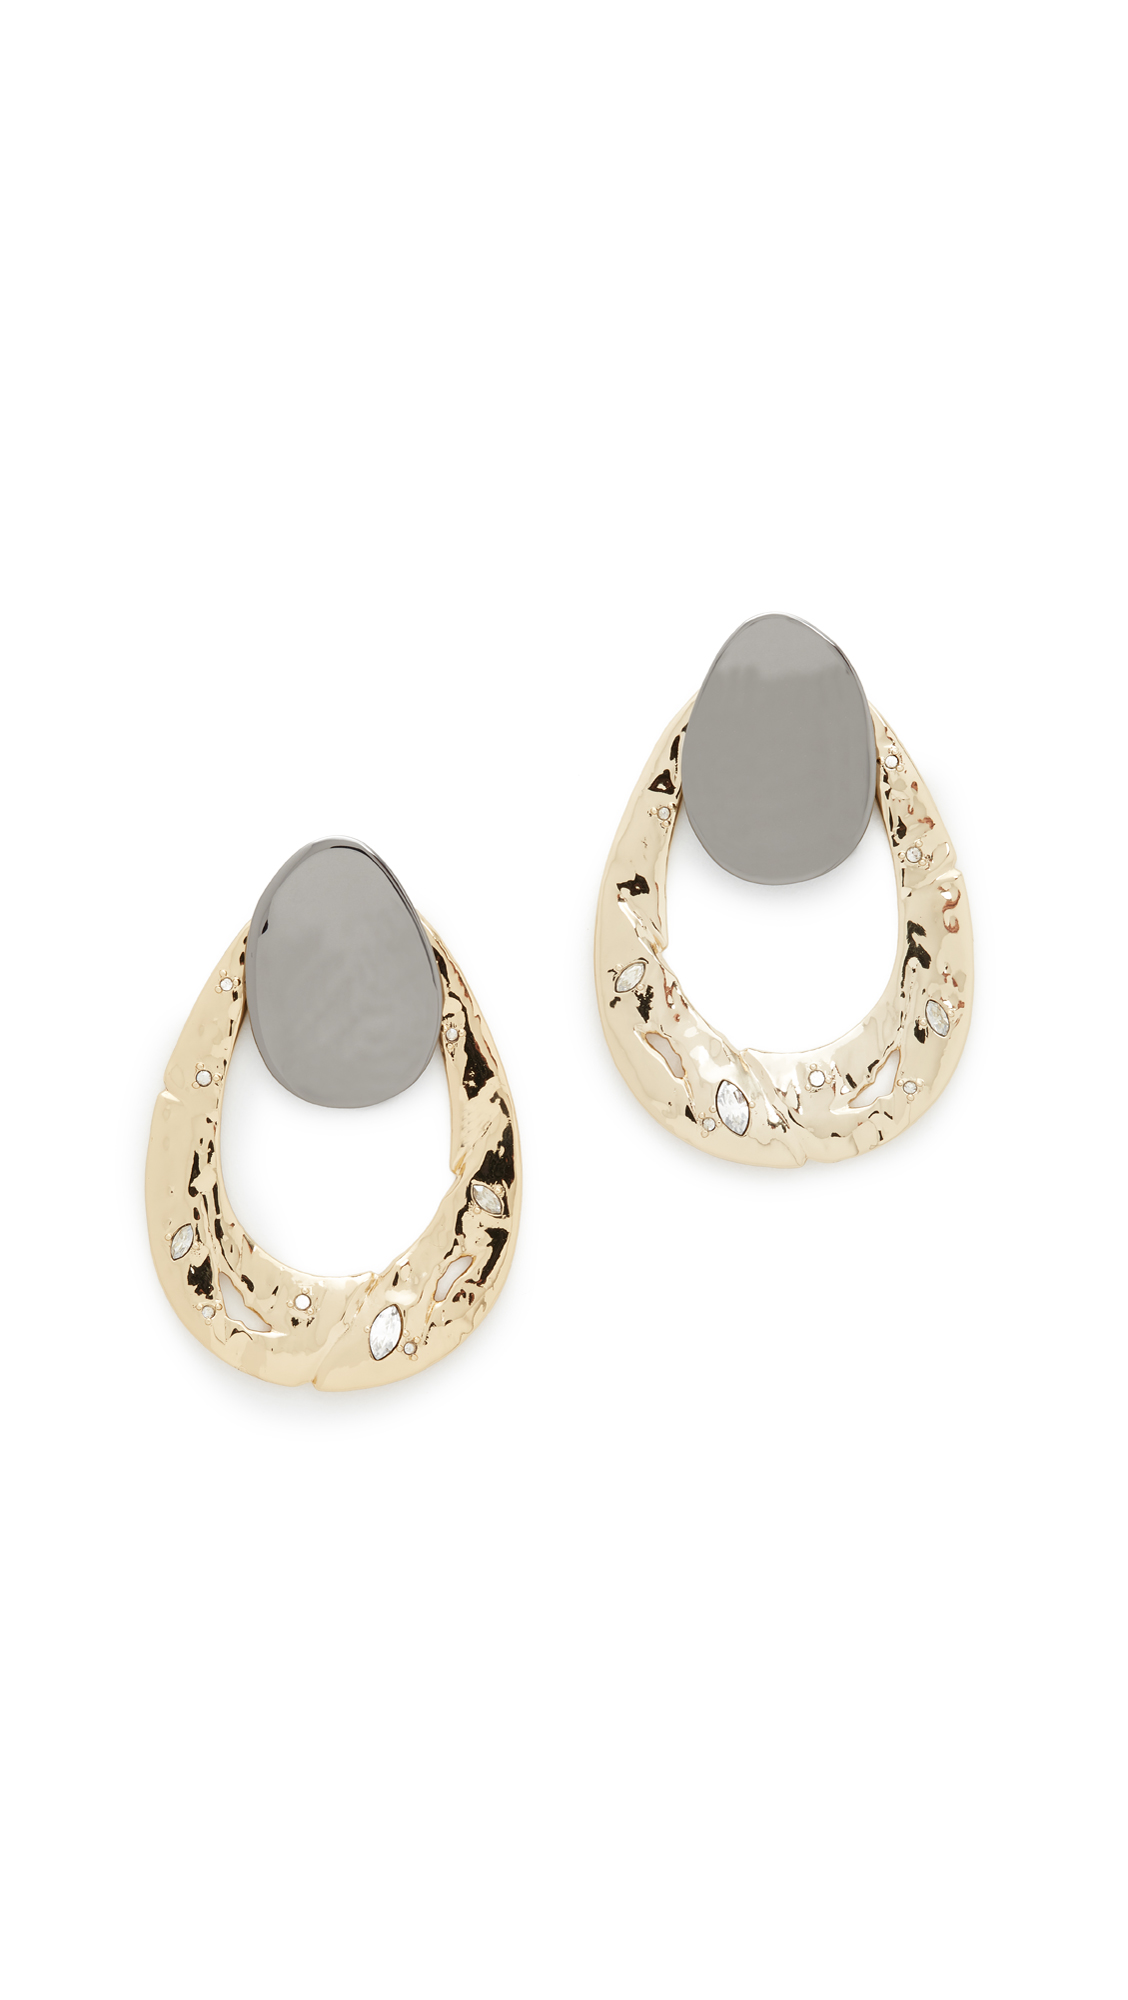 Alexis Bittar Open Hammered Earrings - Gold Multi